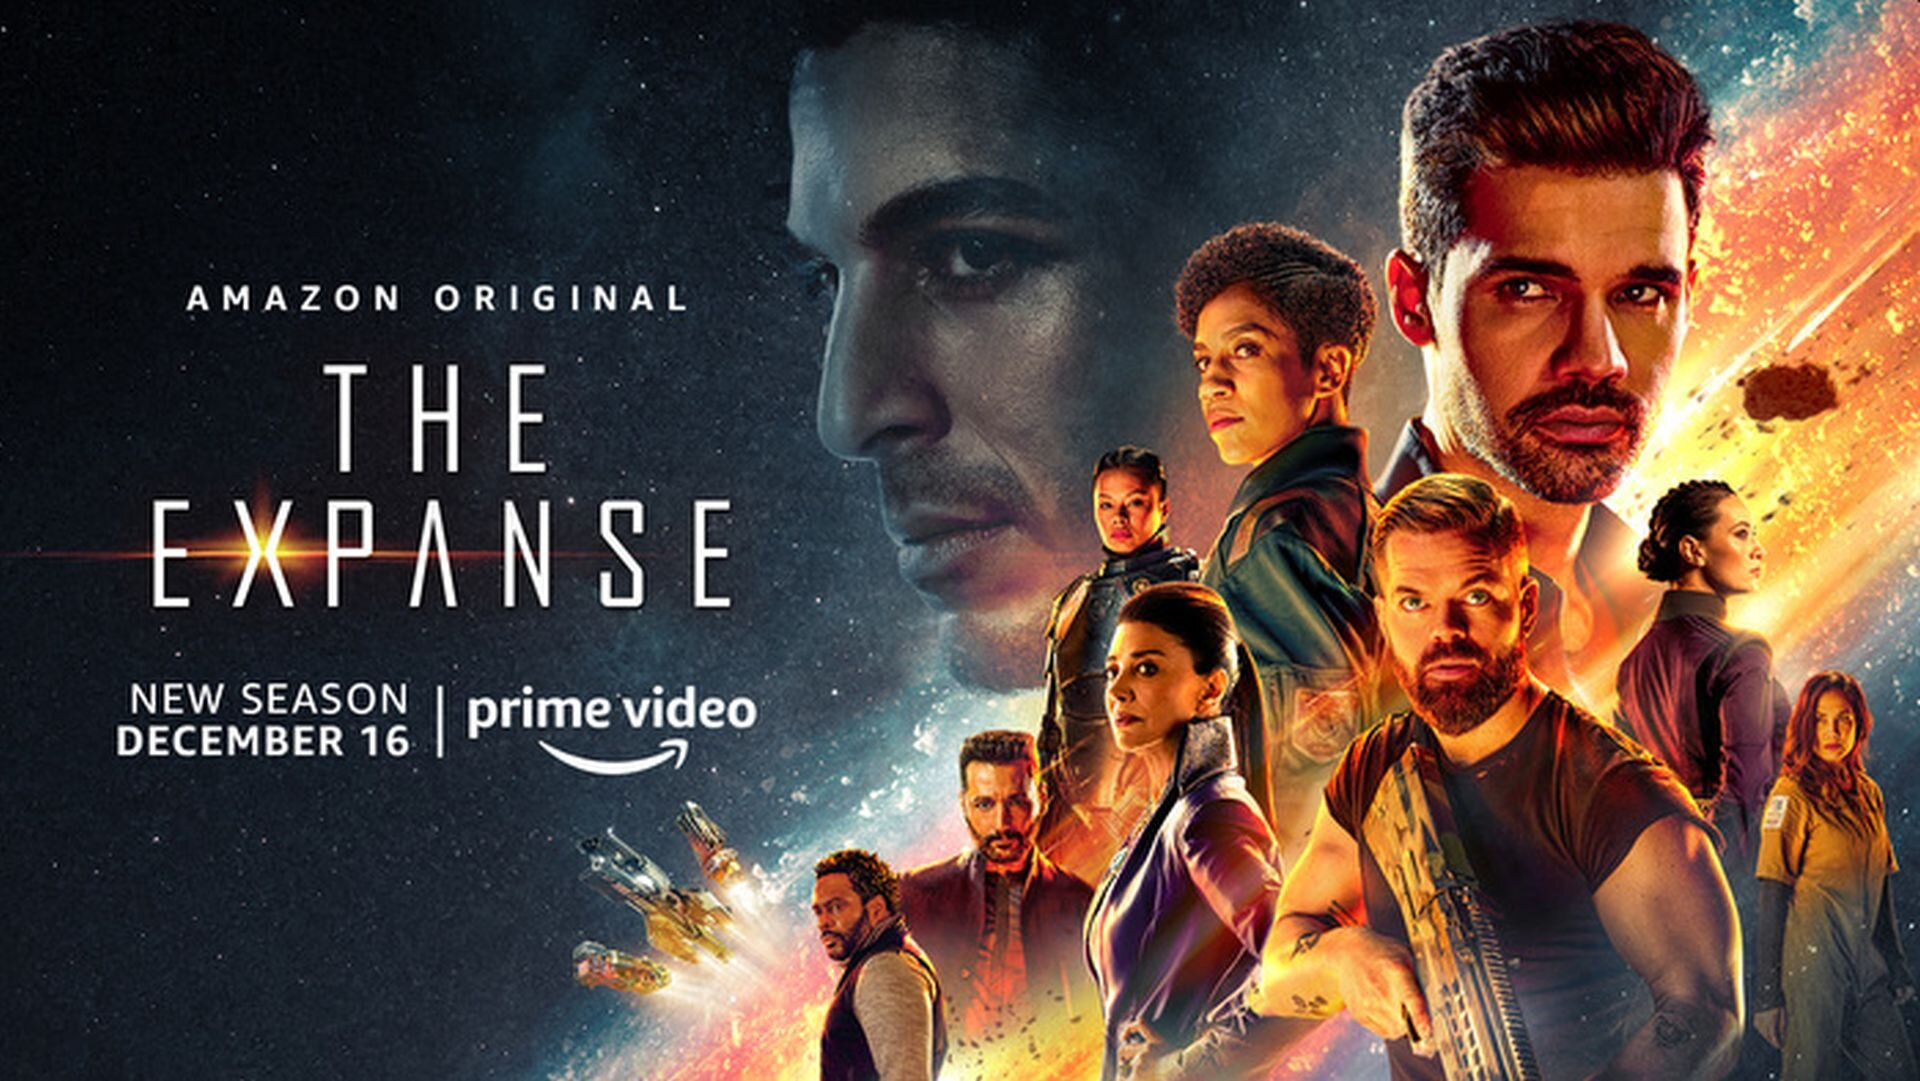 The Expanse Season 5 Episode 2: Release Date, Casts and More!